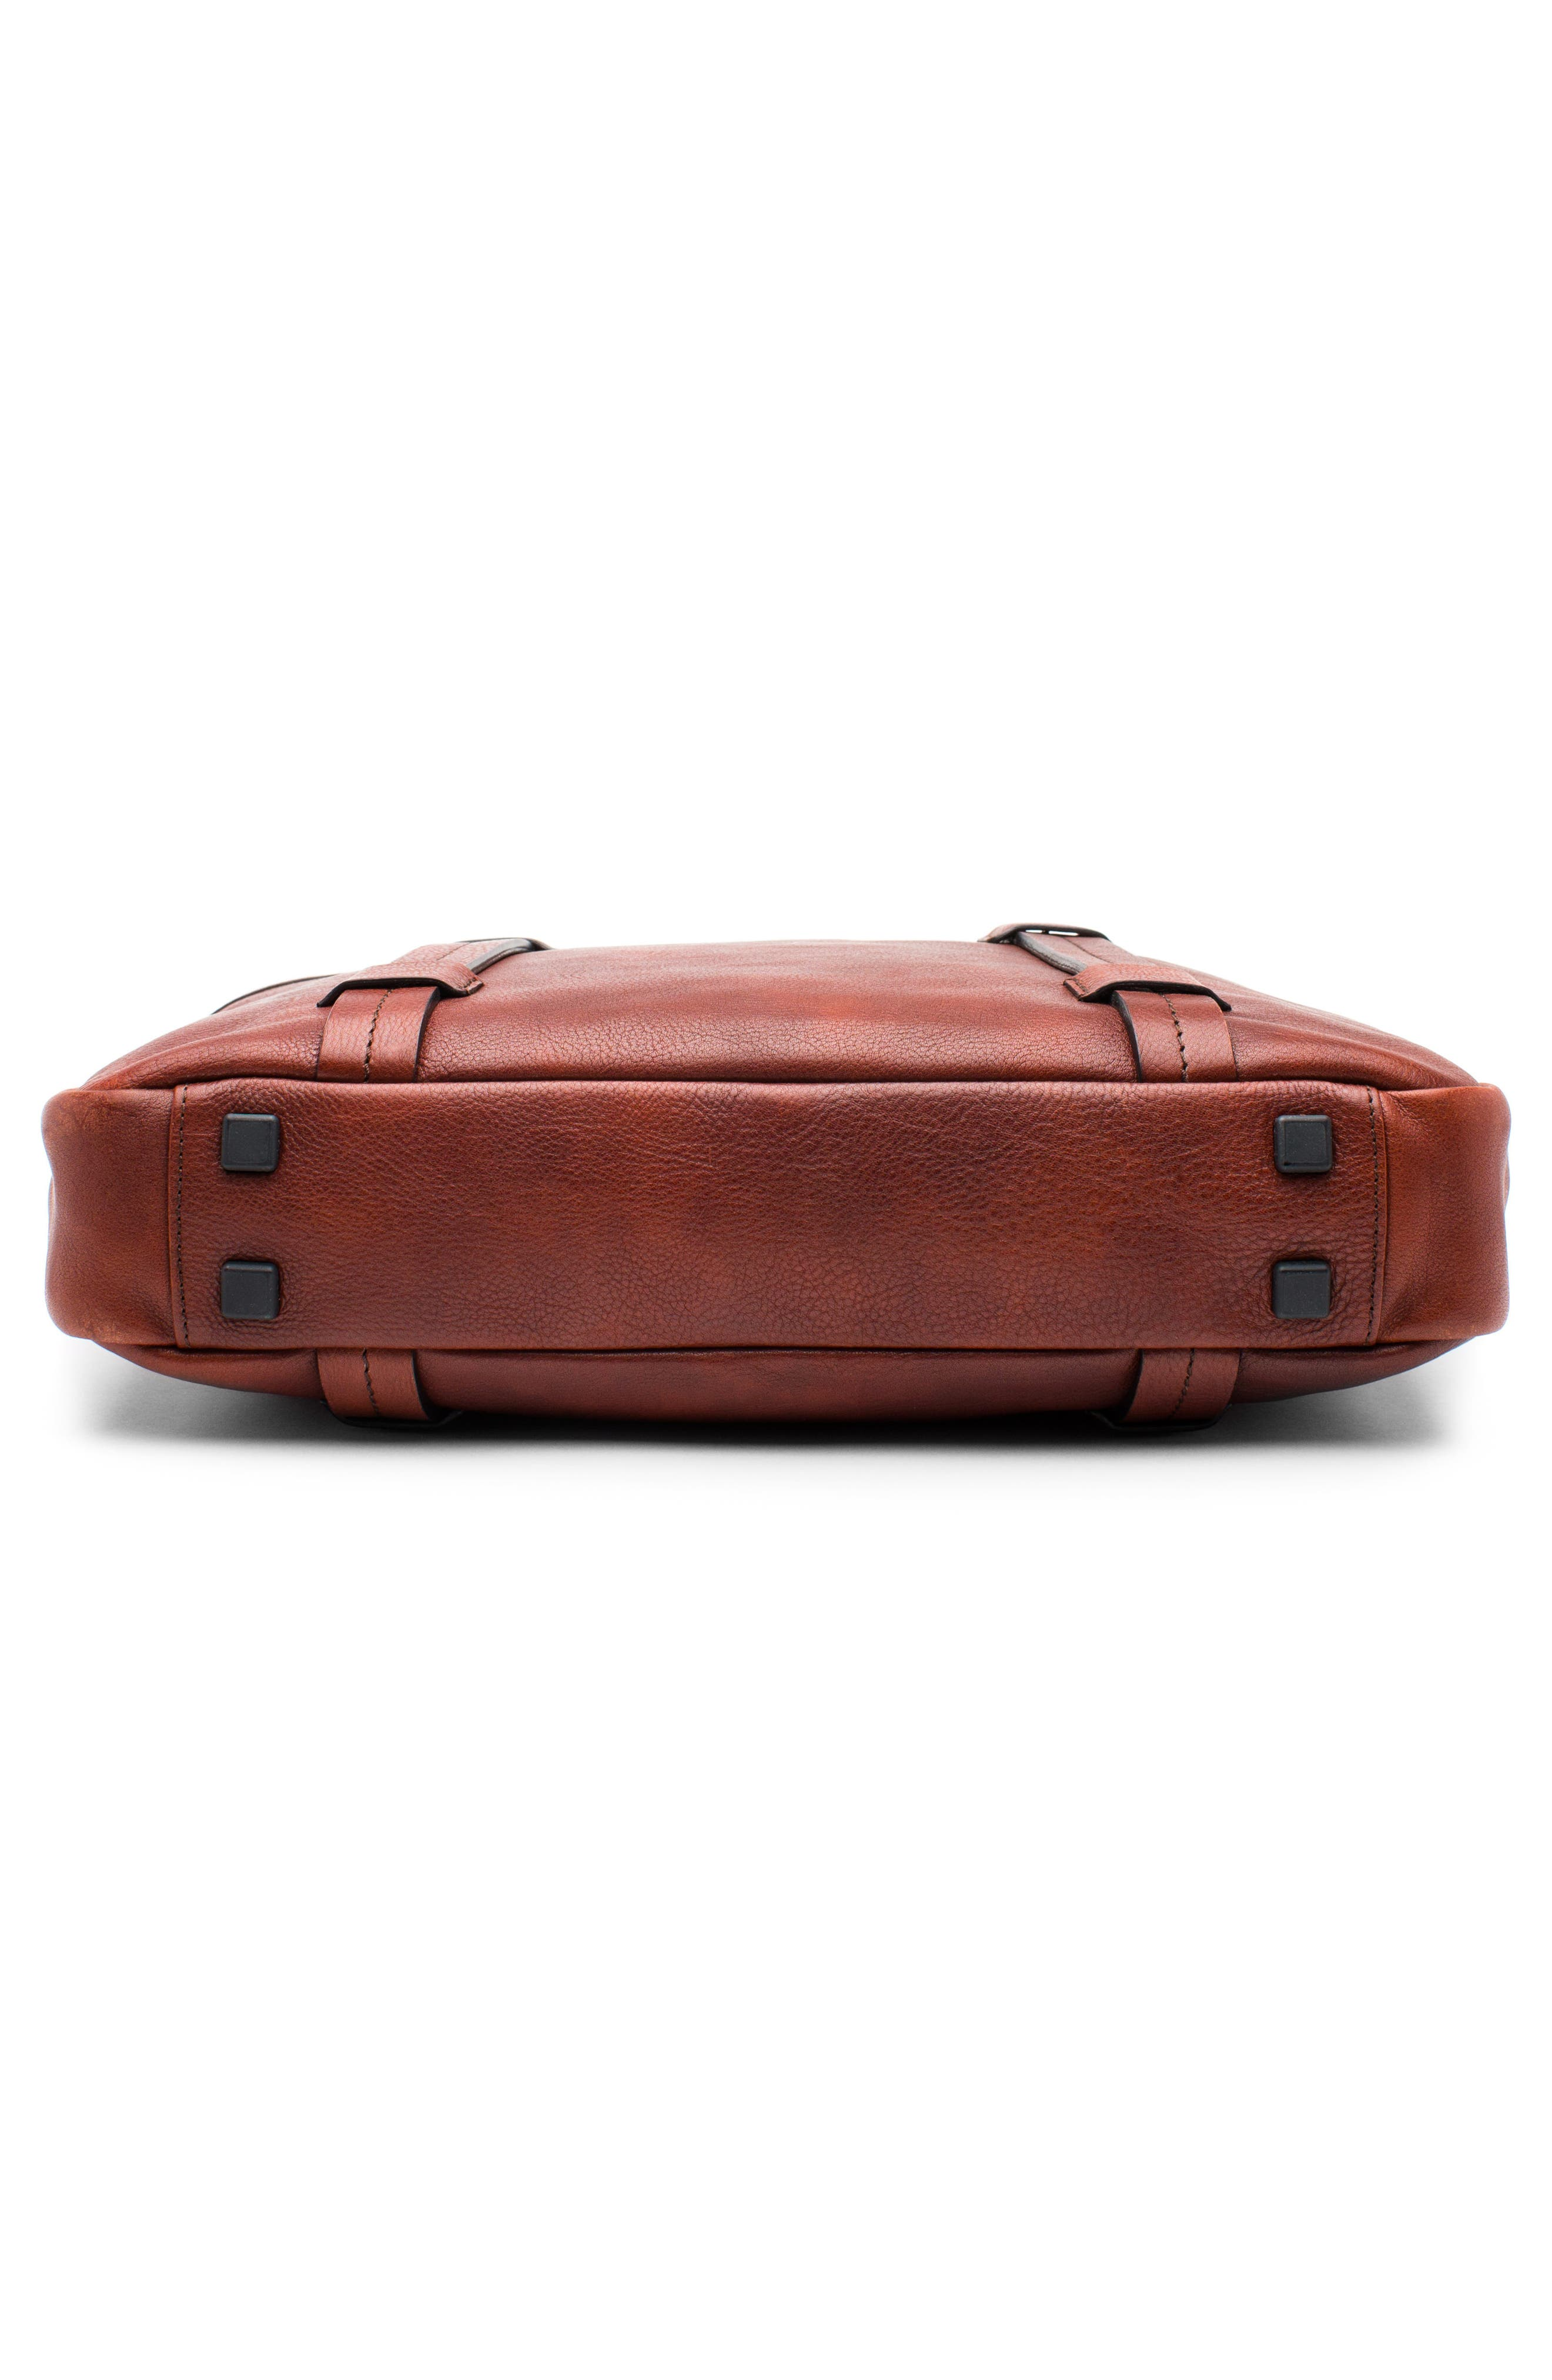 Leather Briefcase,                             Alternate thumbnail 5, color,                             Dark Brown